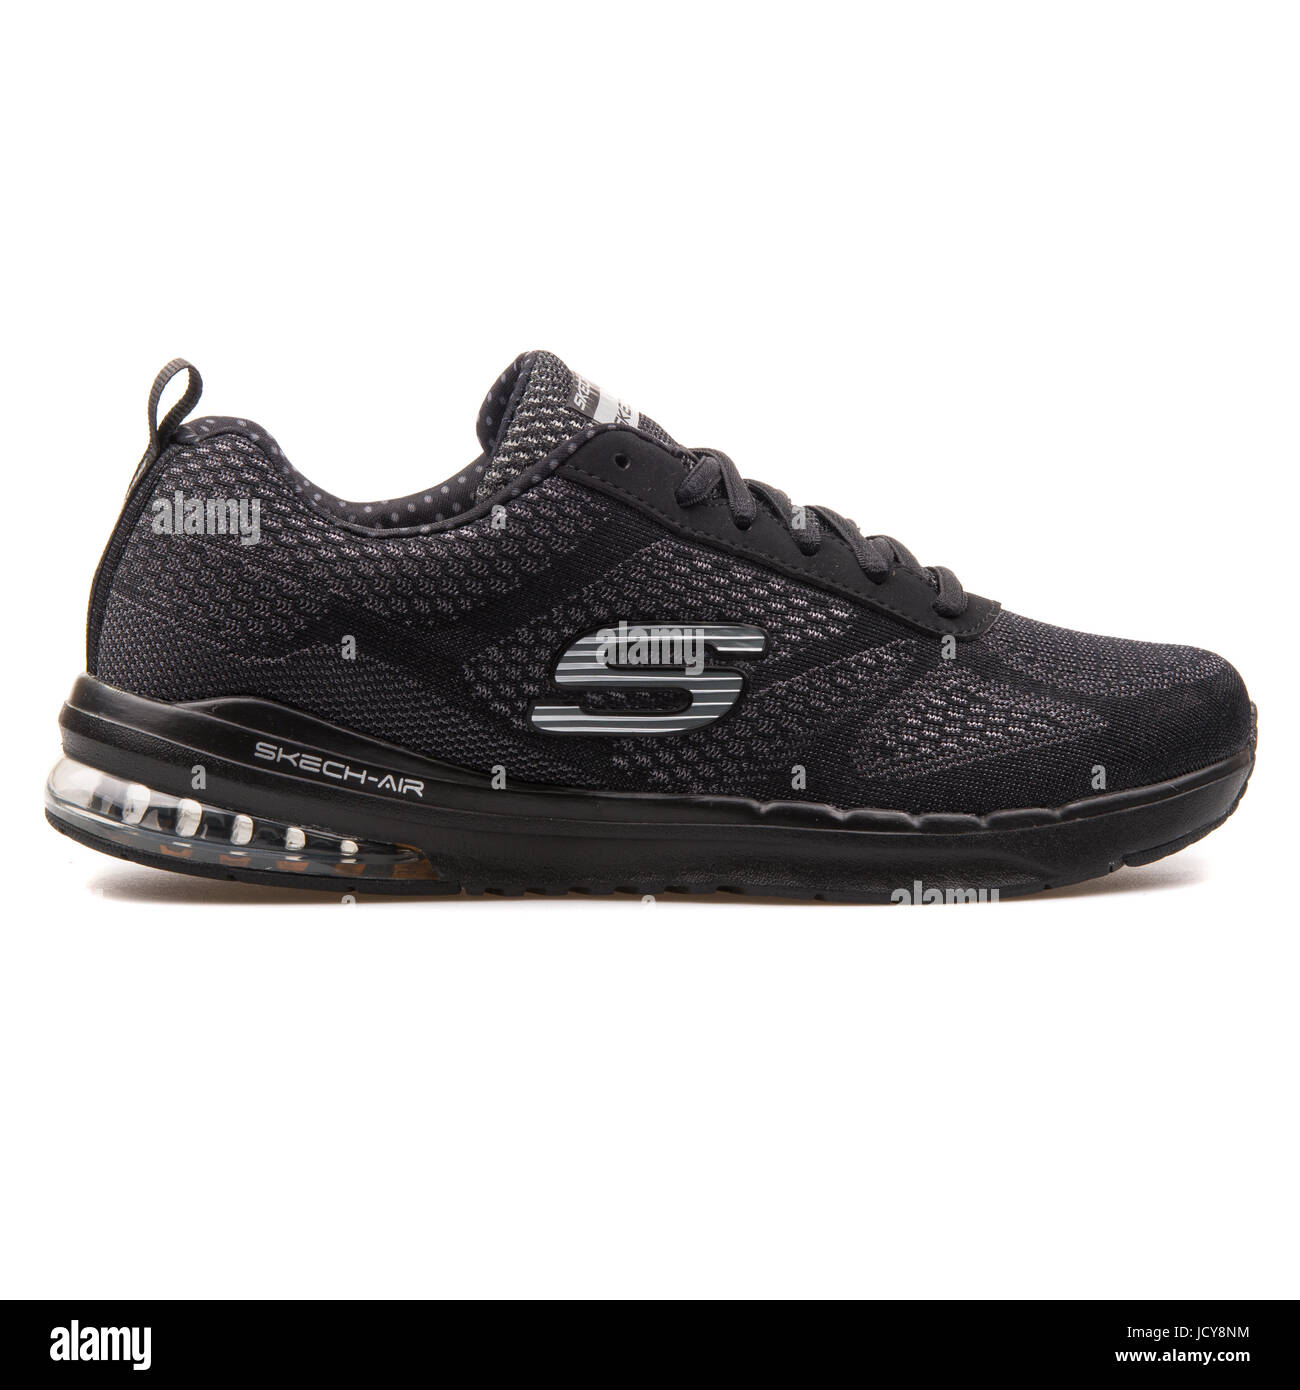 Air Infinity- Black running shoes